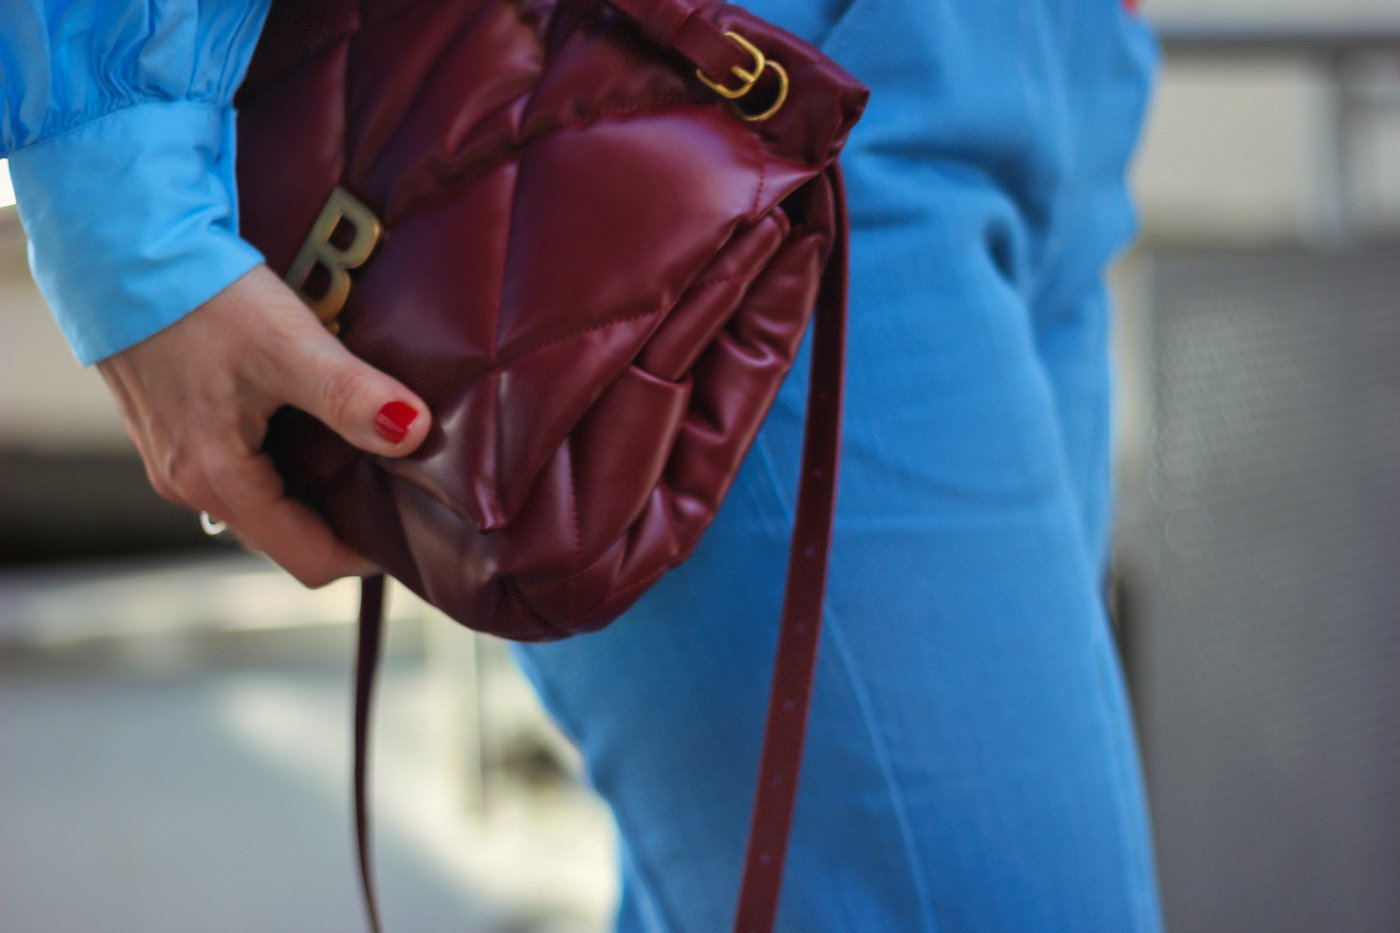 conny doll lifestyle: Details mit roter Balenciaga-Tasche,